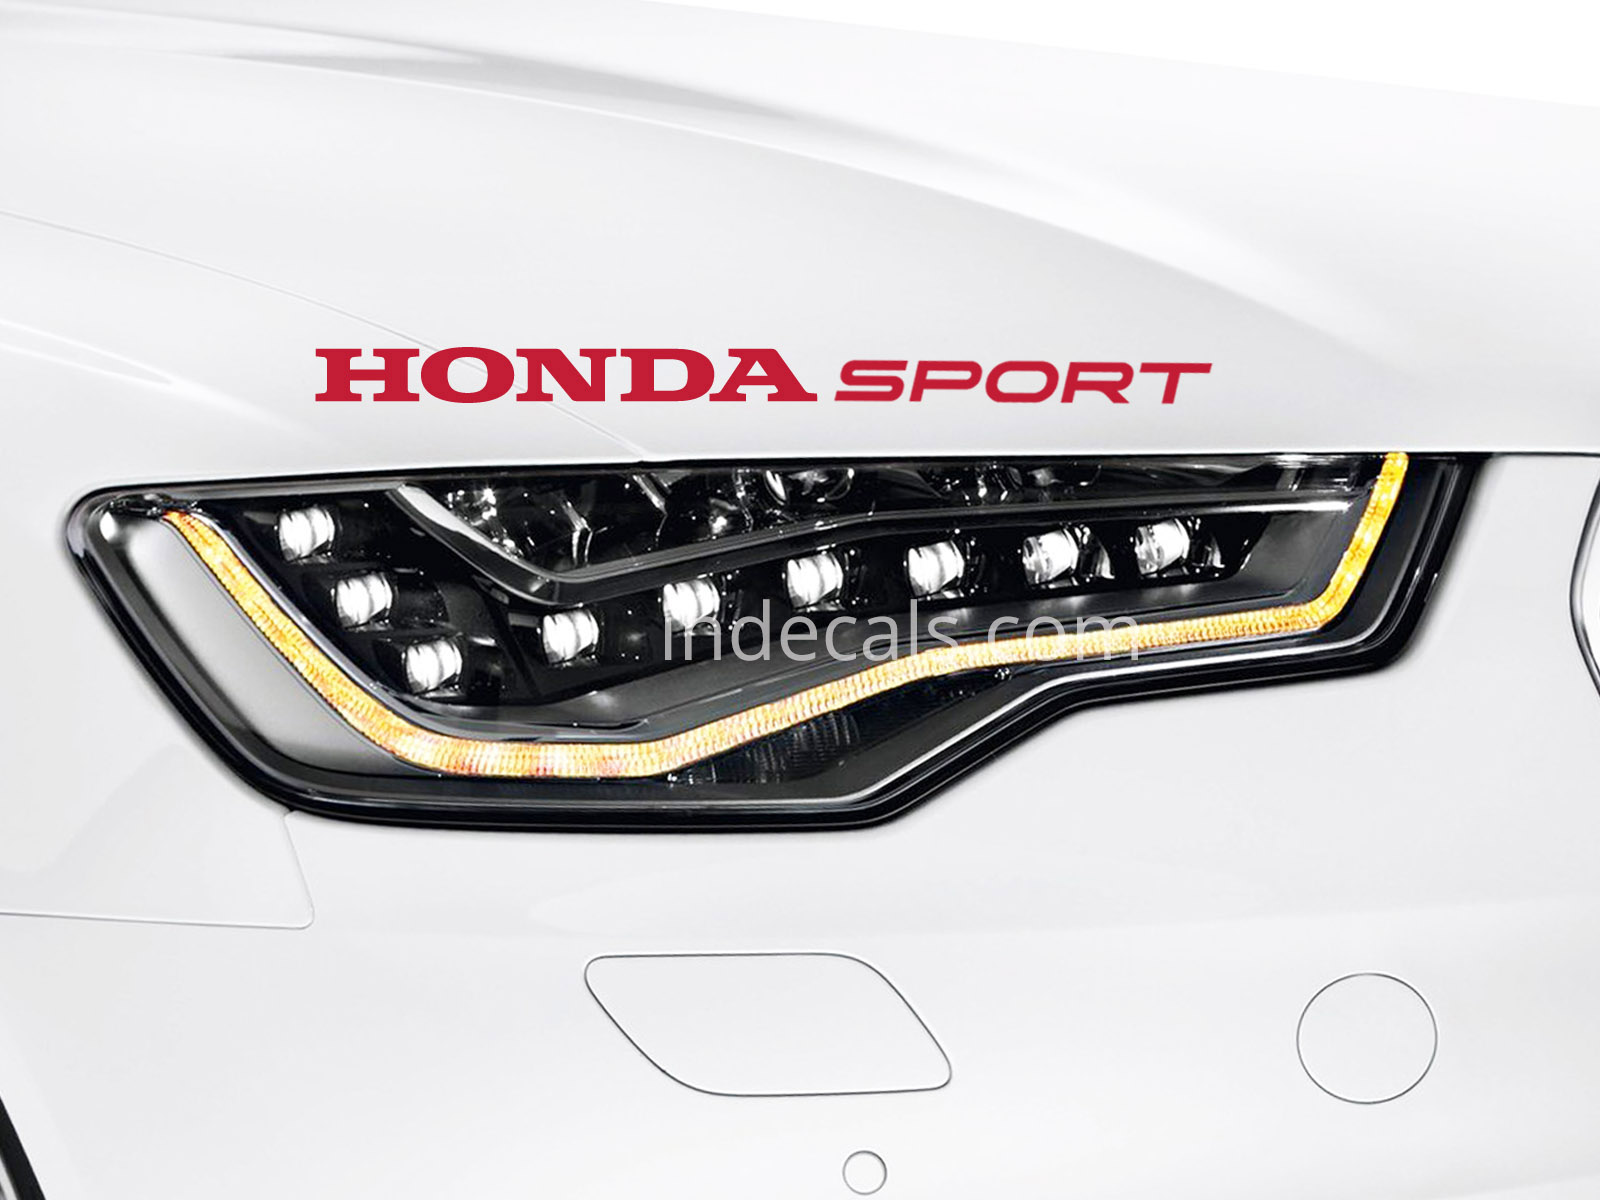 1 x honda sport sticker red